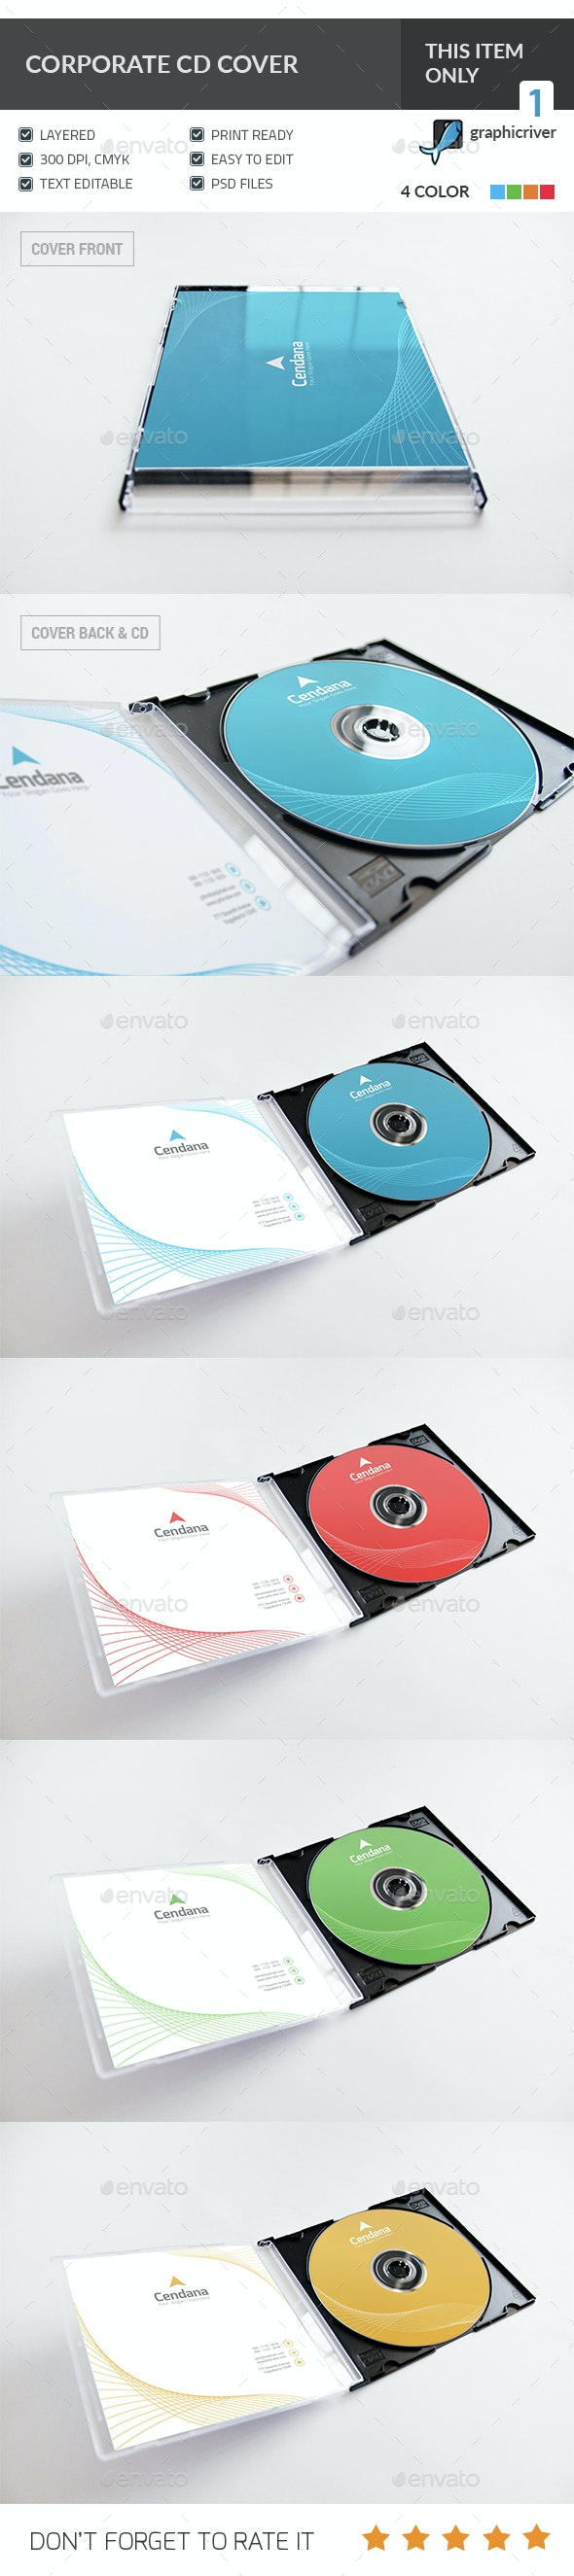 Corporate CD/DVD Cover - CD & DVD Artwork Print Templates